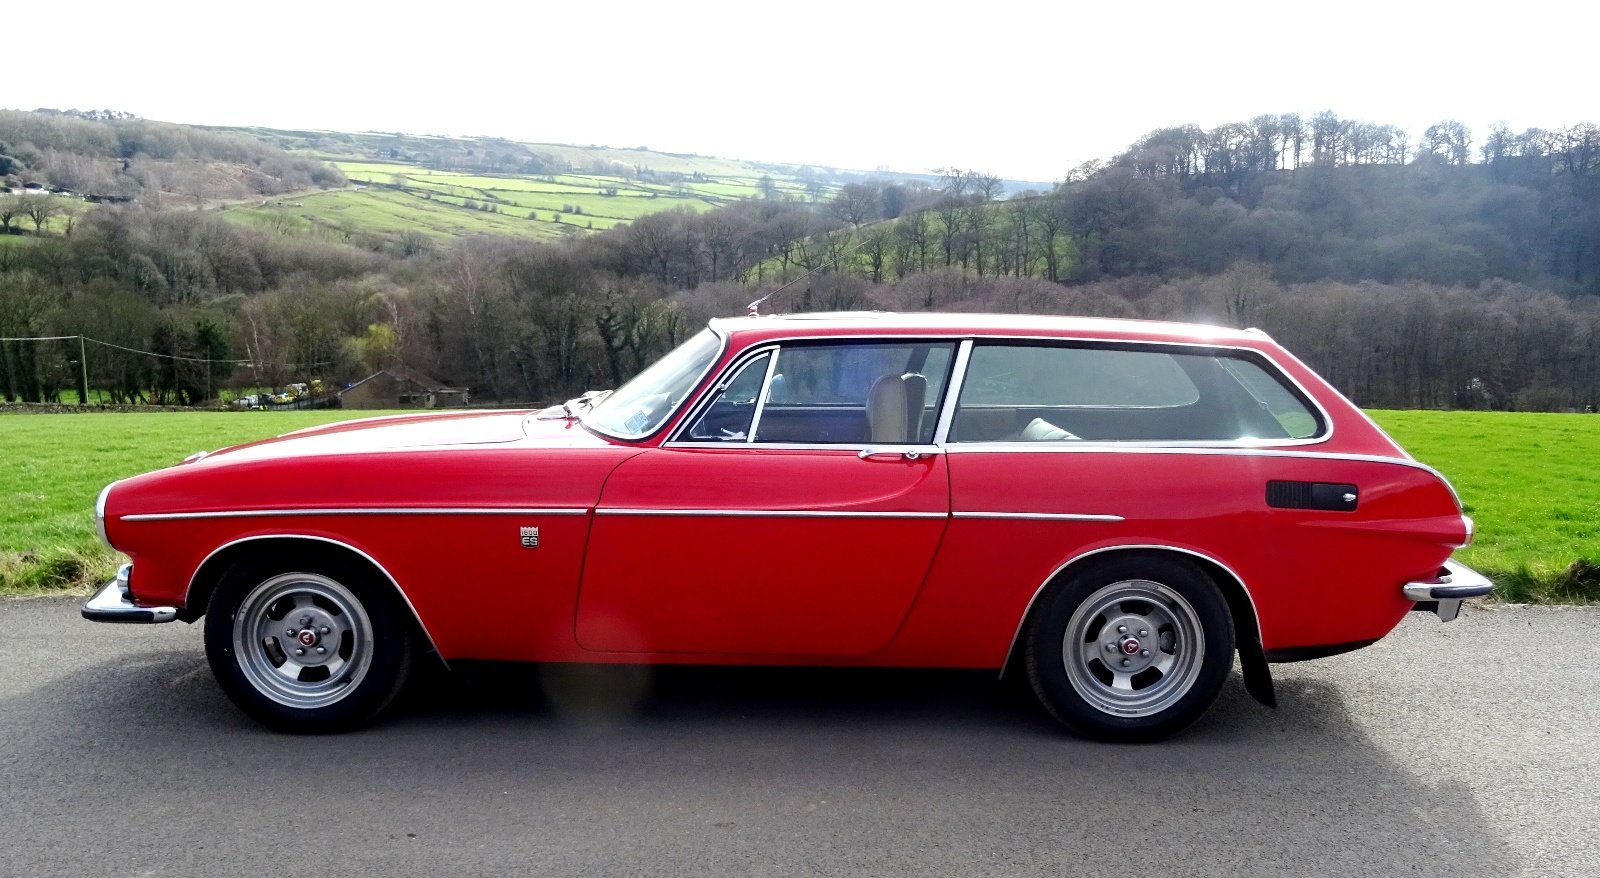 1971 VOLVO 1800 ES WELL CARED FOR LOADS OF HISTORY EASY LIFE For Sale (picture 5 of 6)